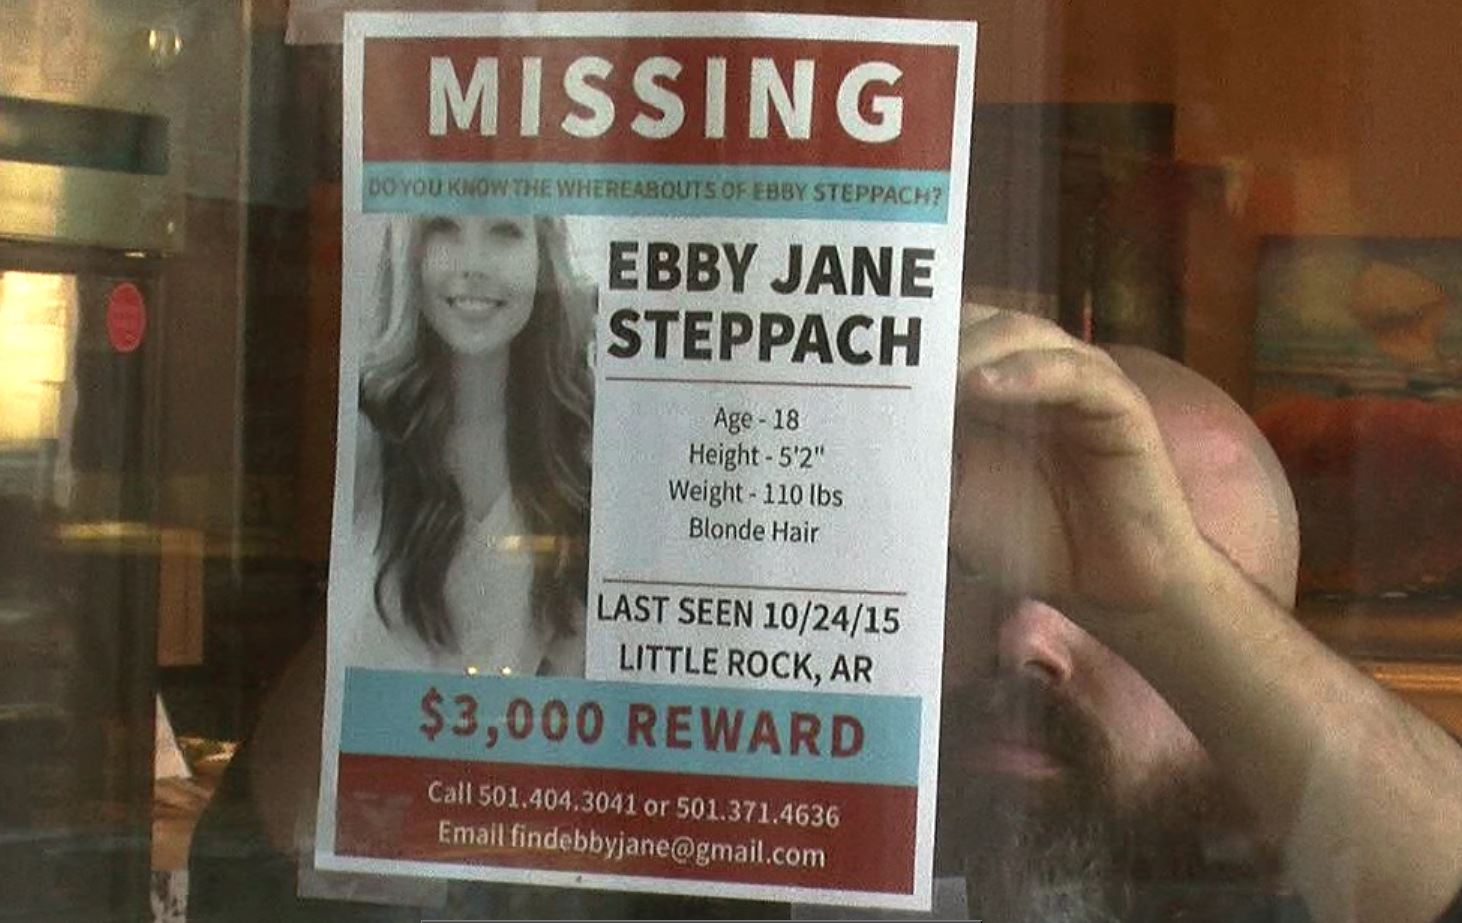 A $15,000 reward has been offered for any information that leads to finding Ebby Steppach. (KATV photo)